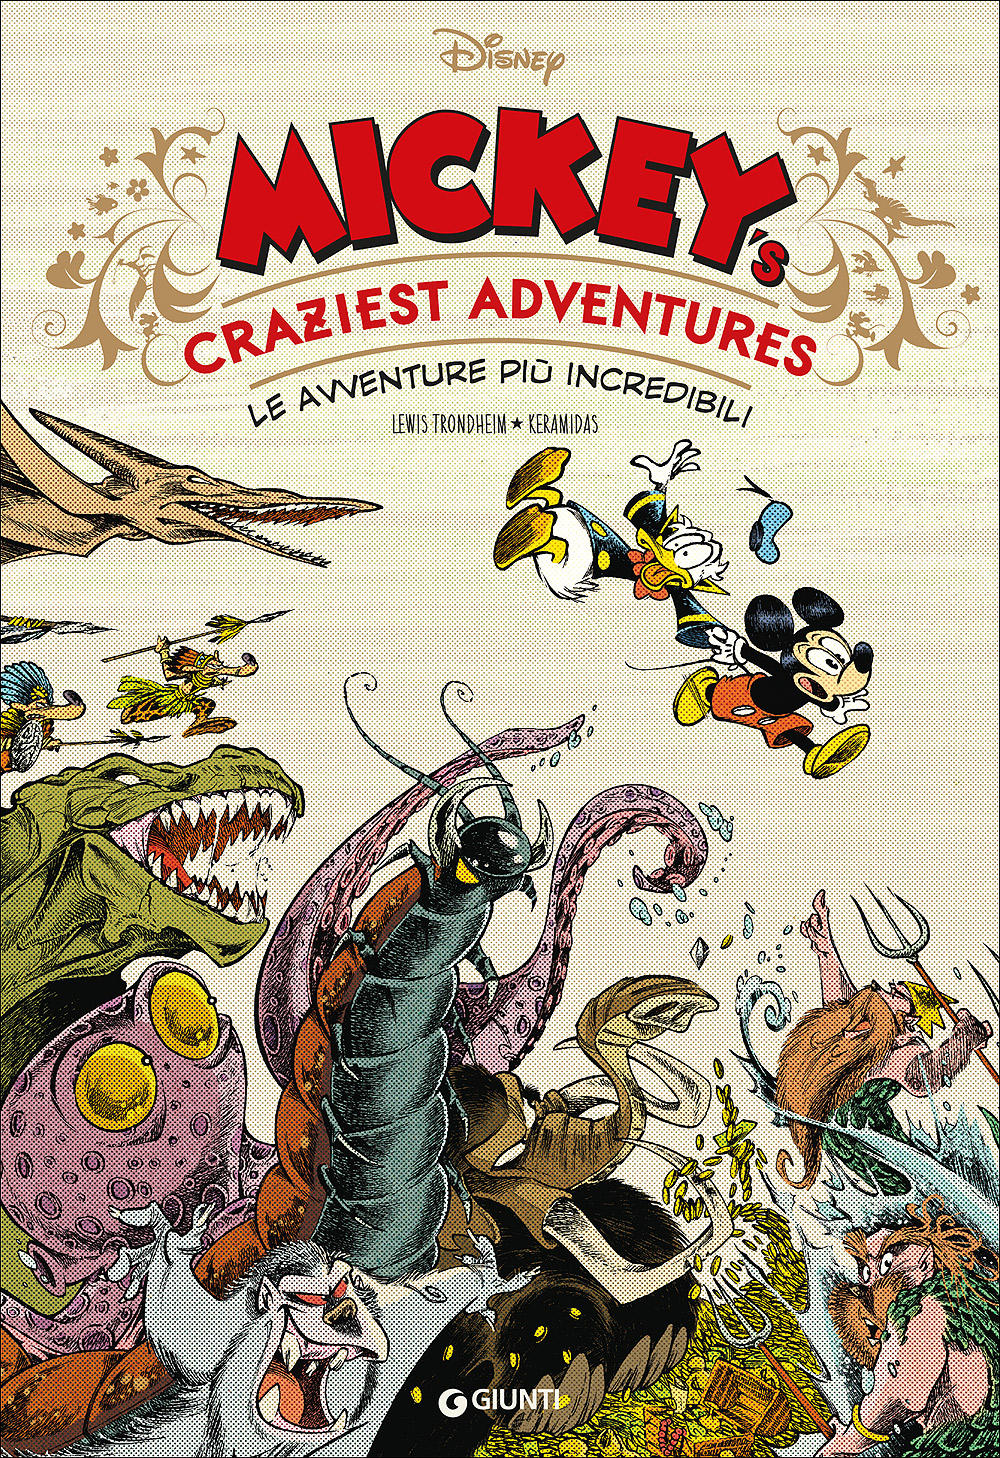 Disney Comic Collection - Mickey's craziest adventures